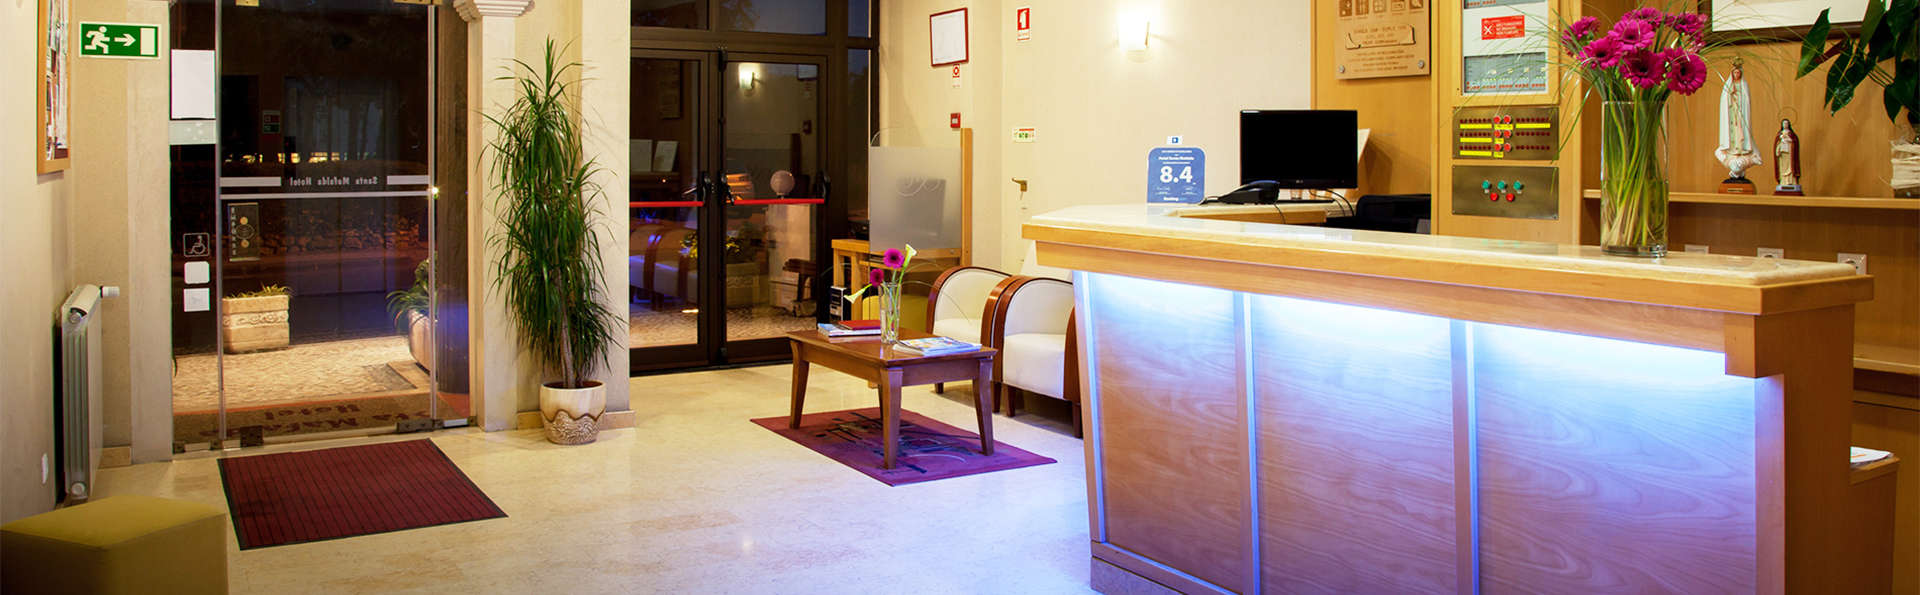 Hotel Santa Mafalda - EDIT_Reception.jpg